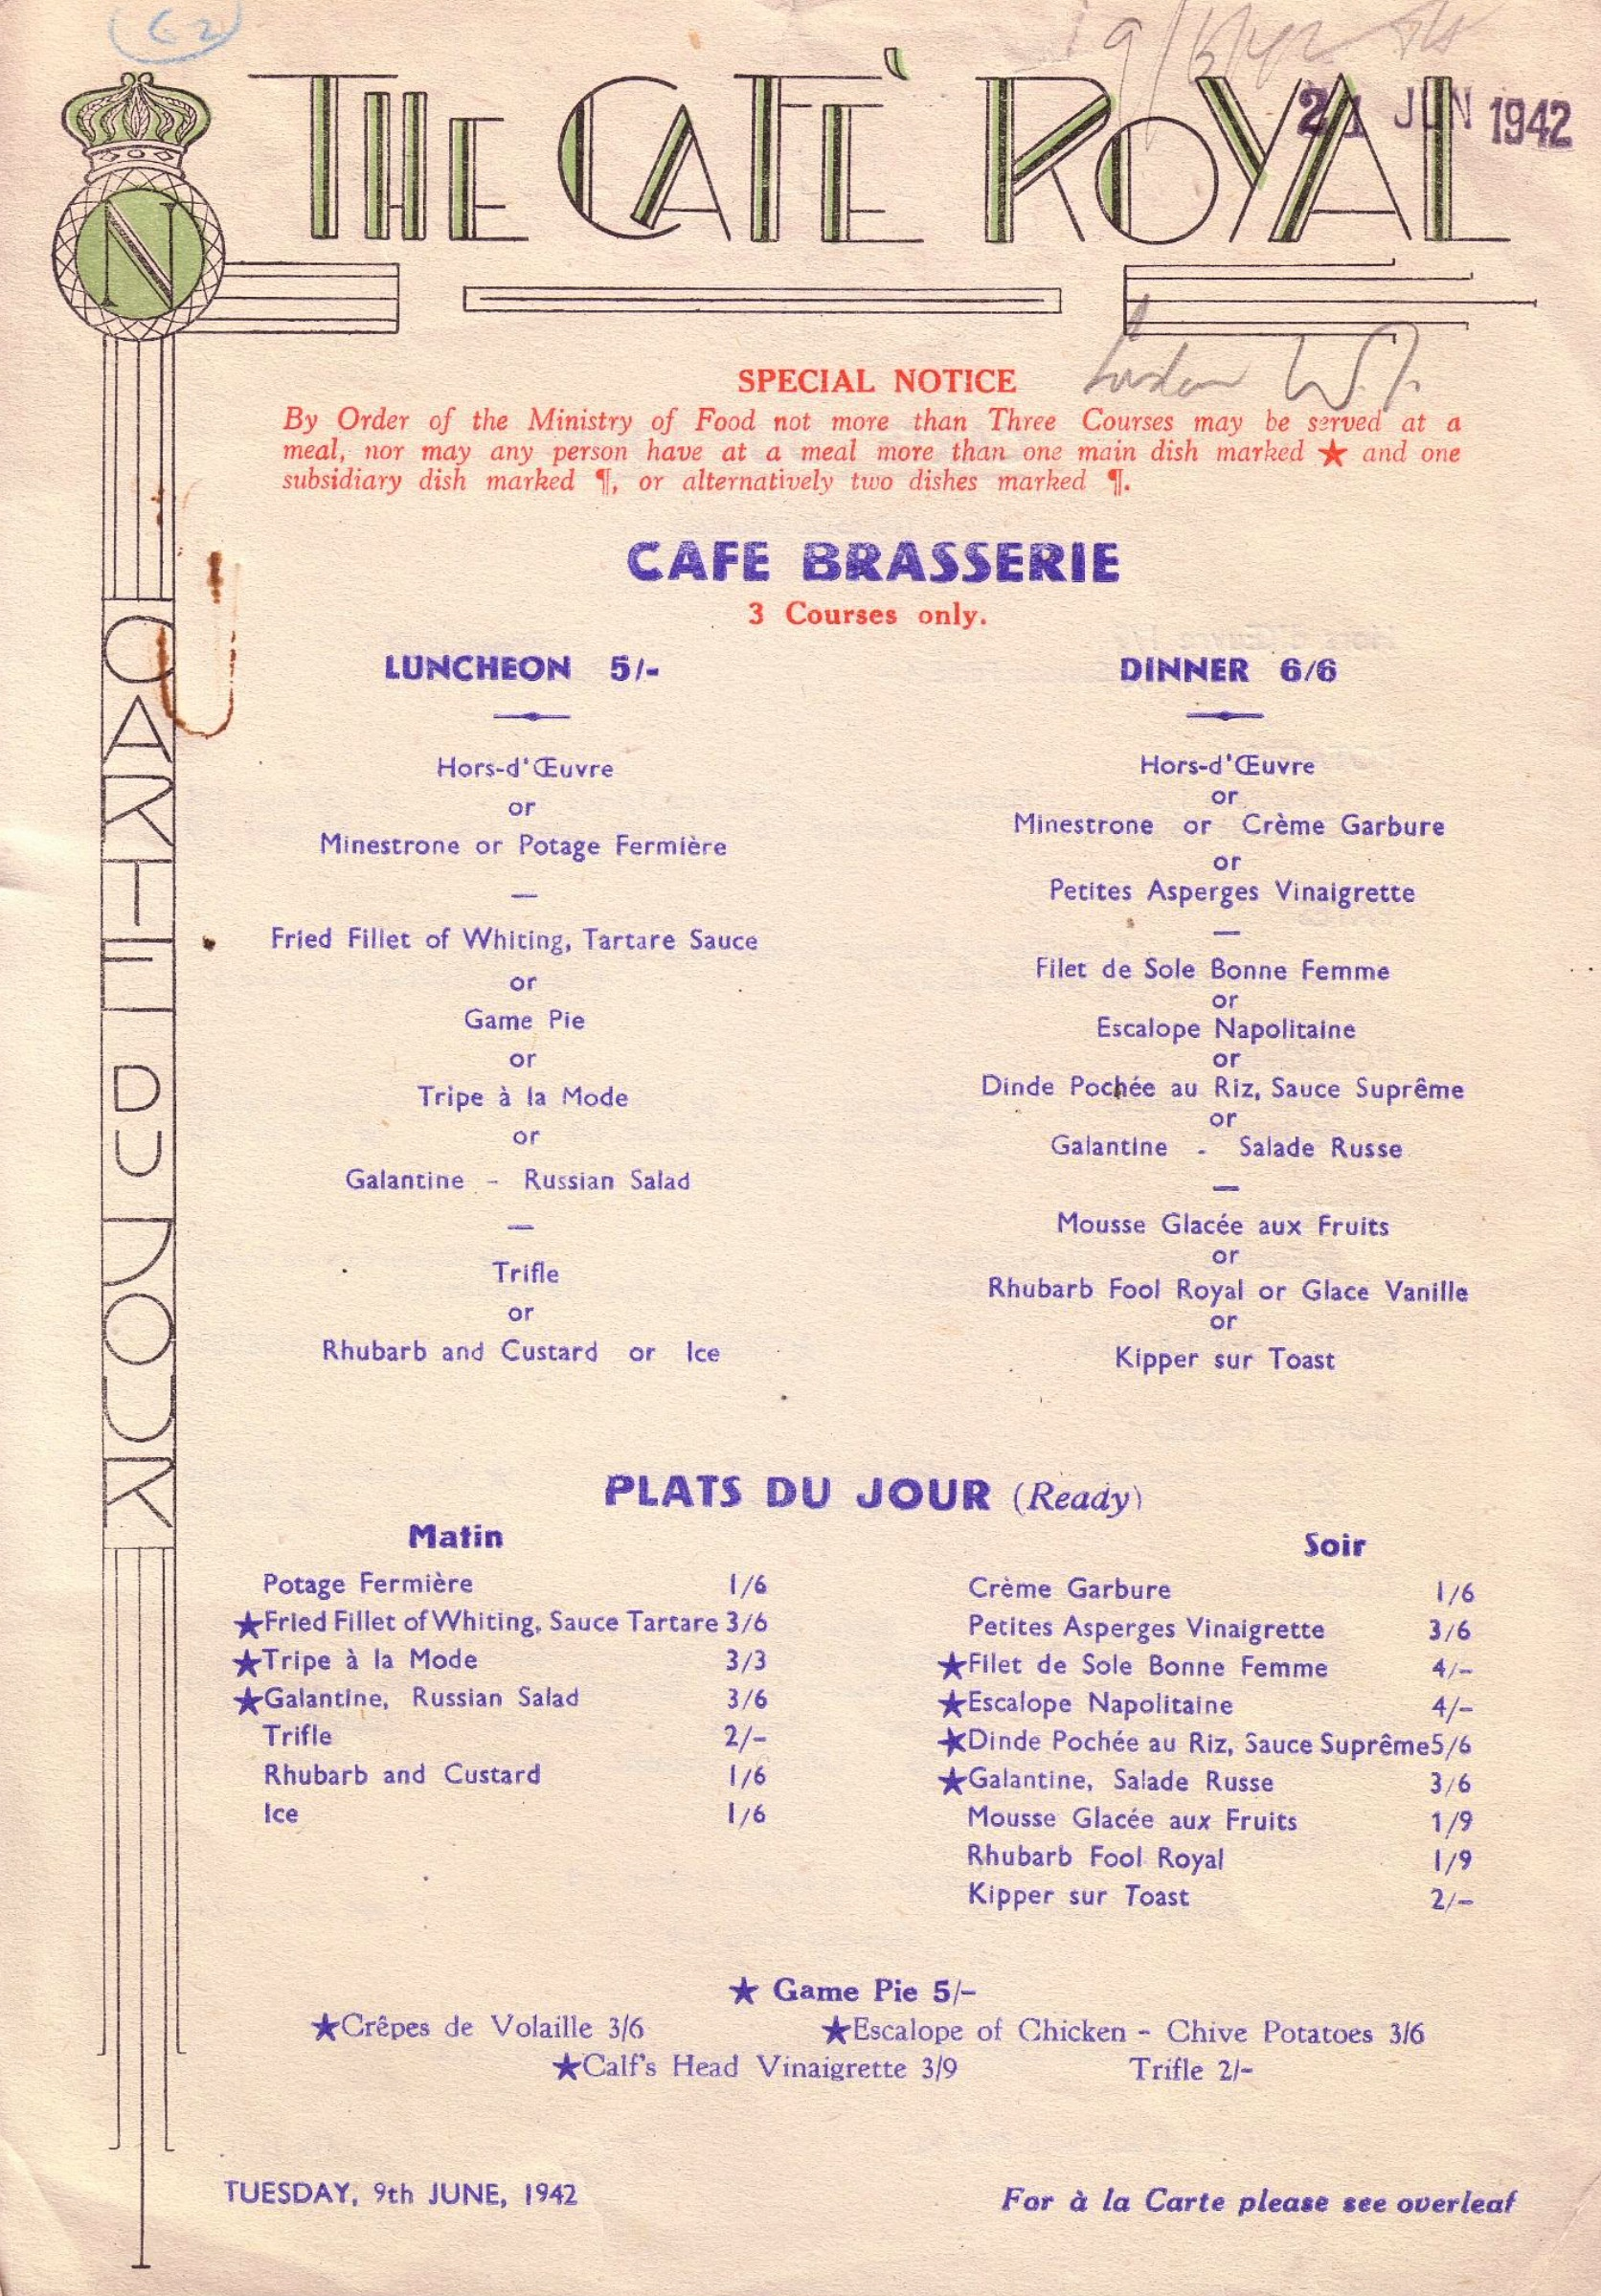 Vintage menu for the Cafe Royal, London 1942